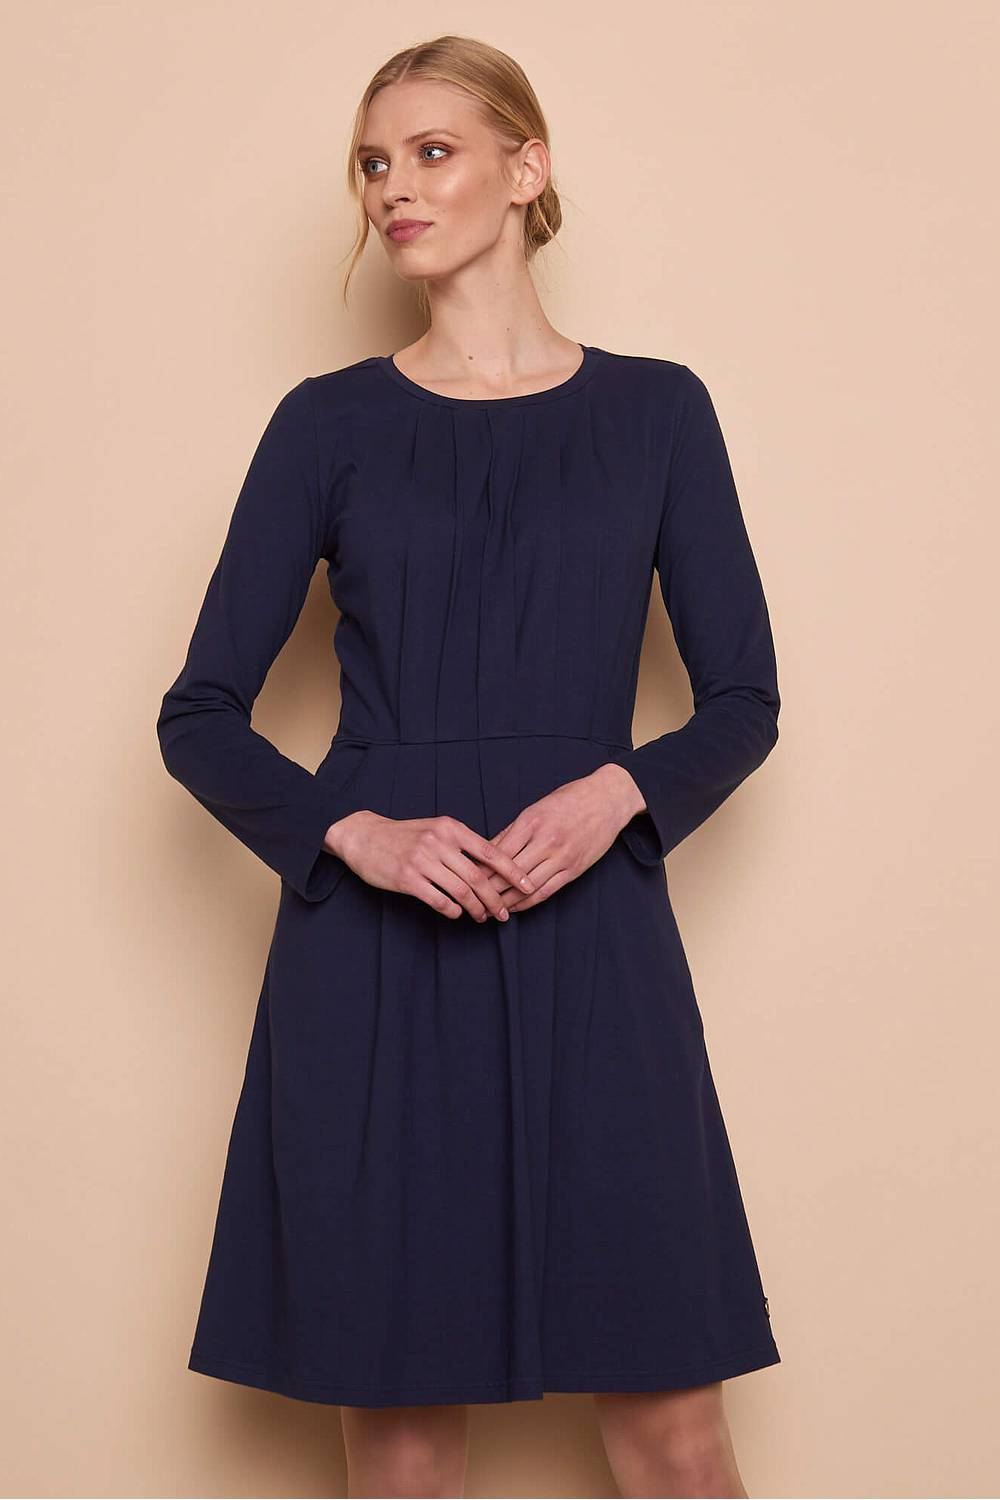 Jersey Dress AGDA navy